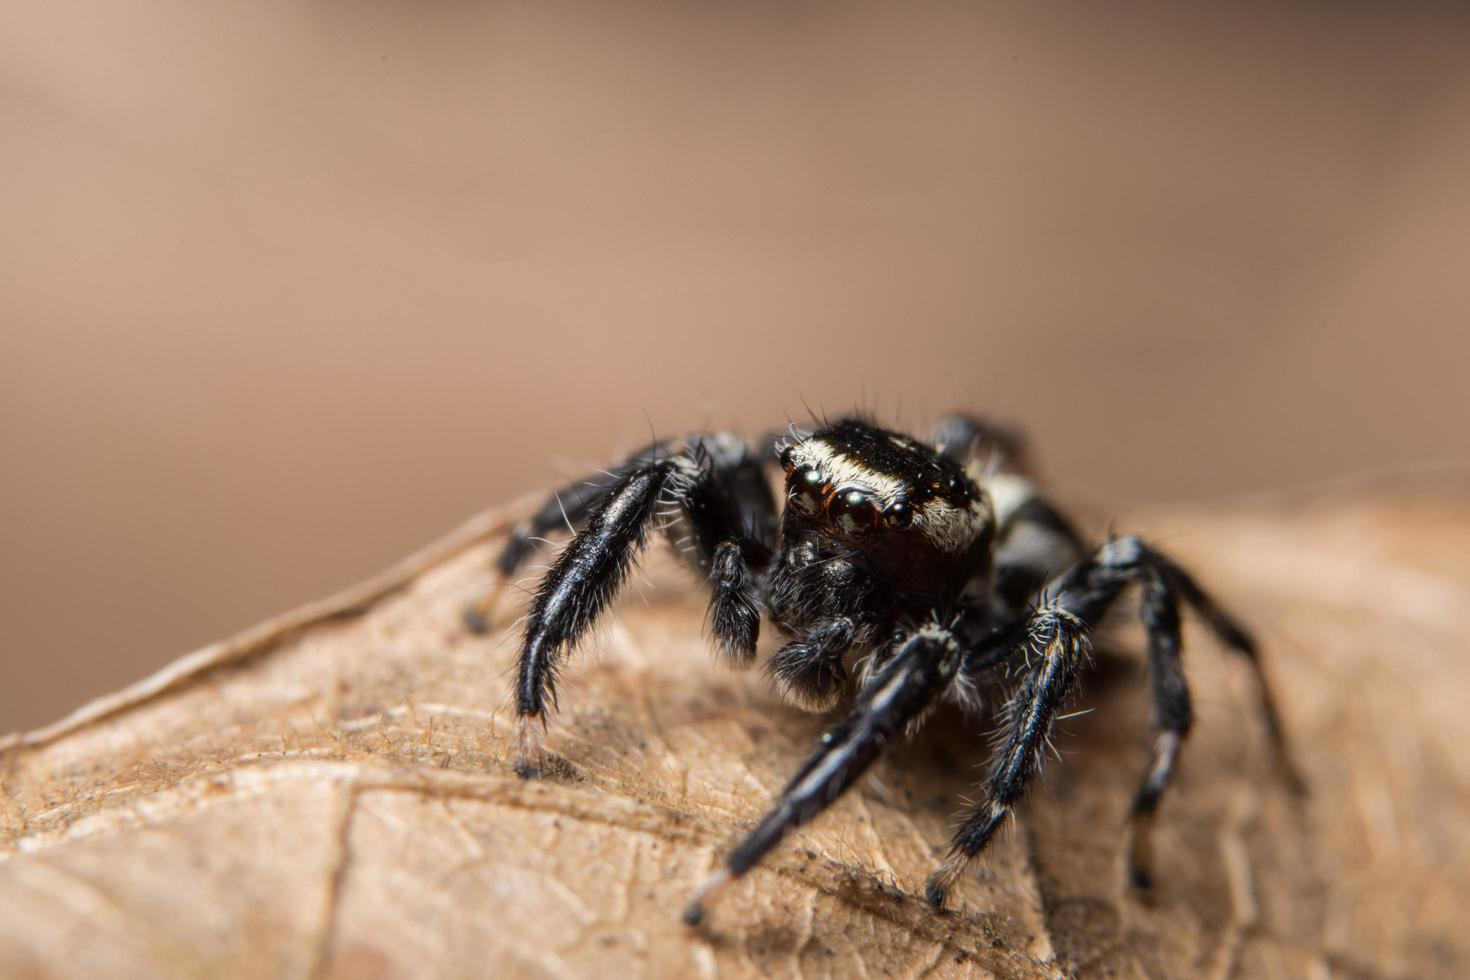 Spider on a leaf, close-up photo